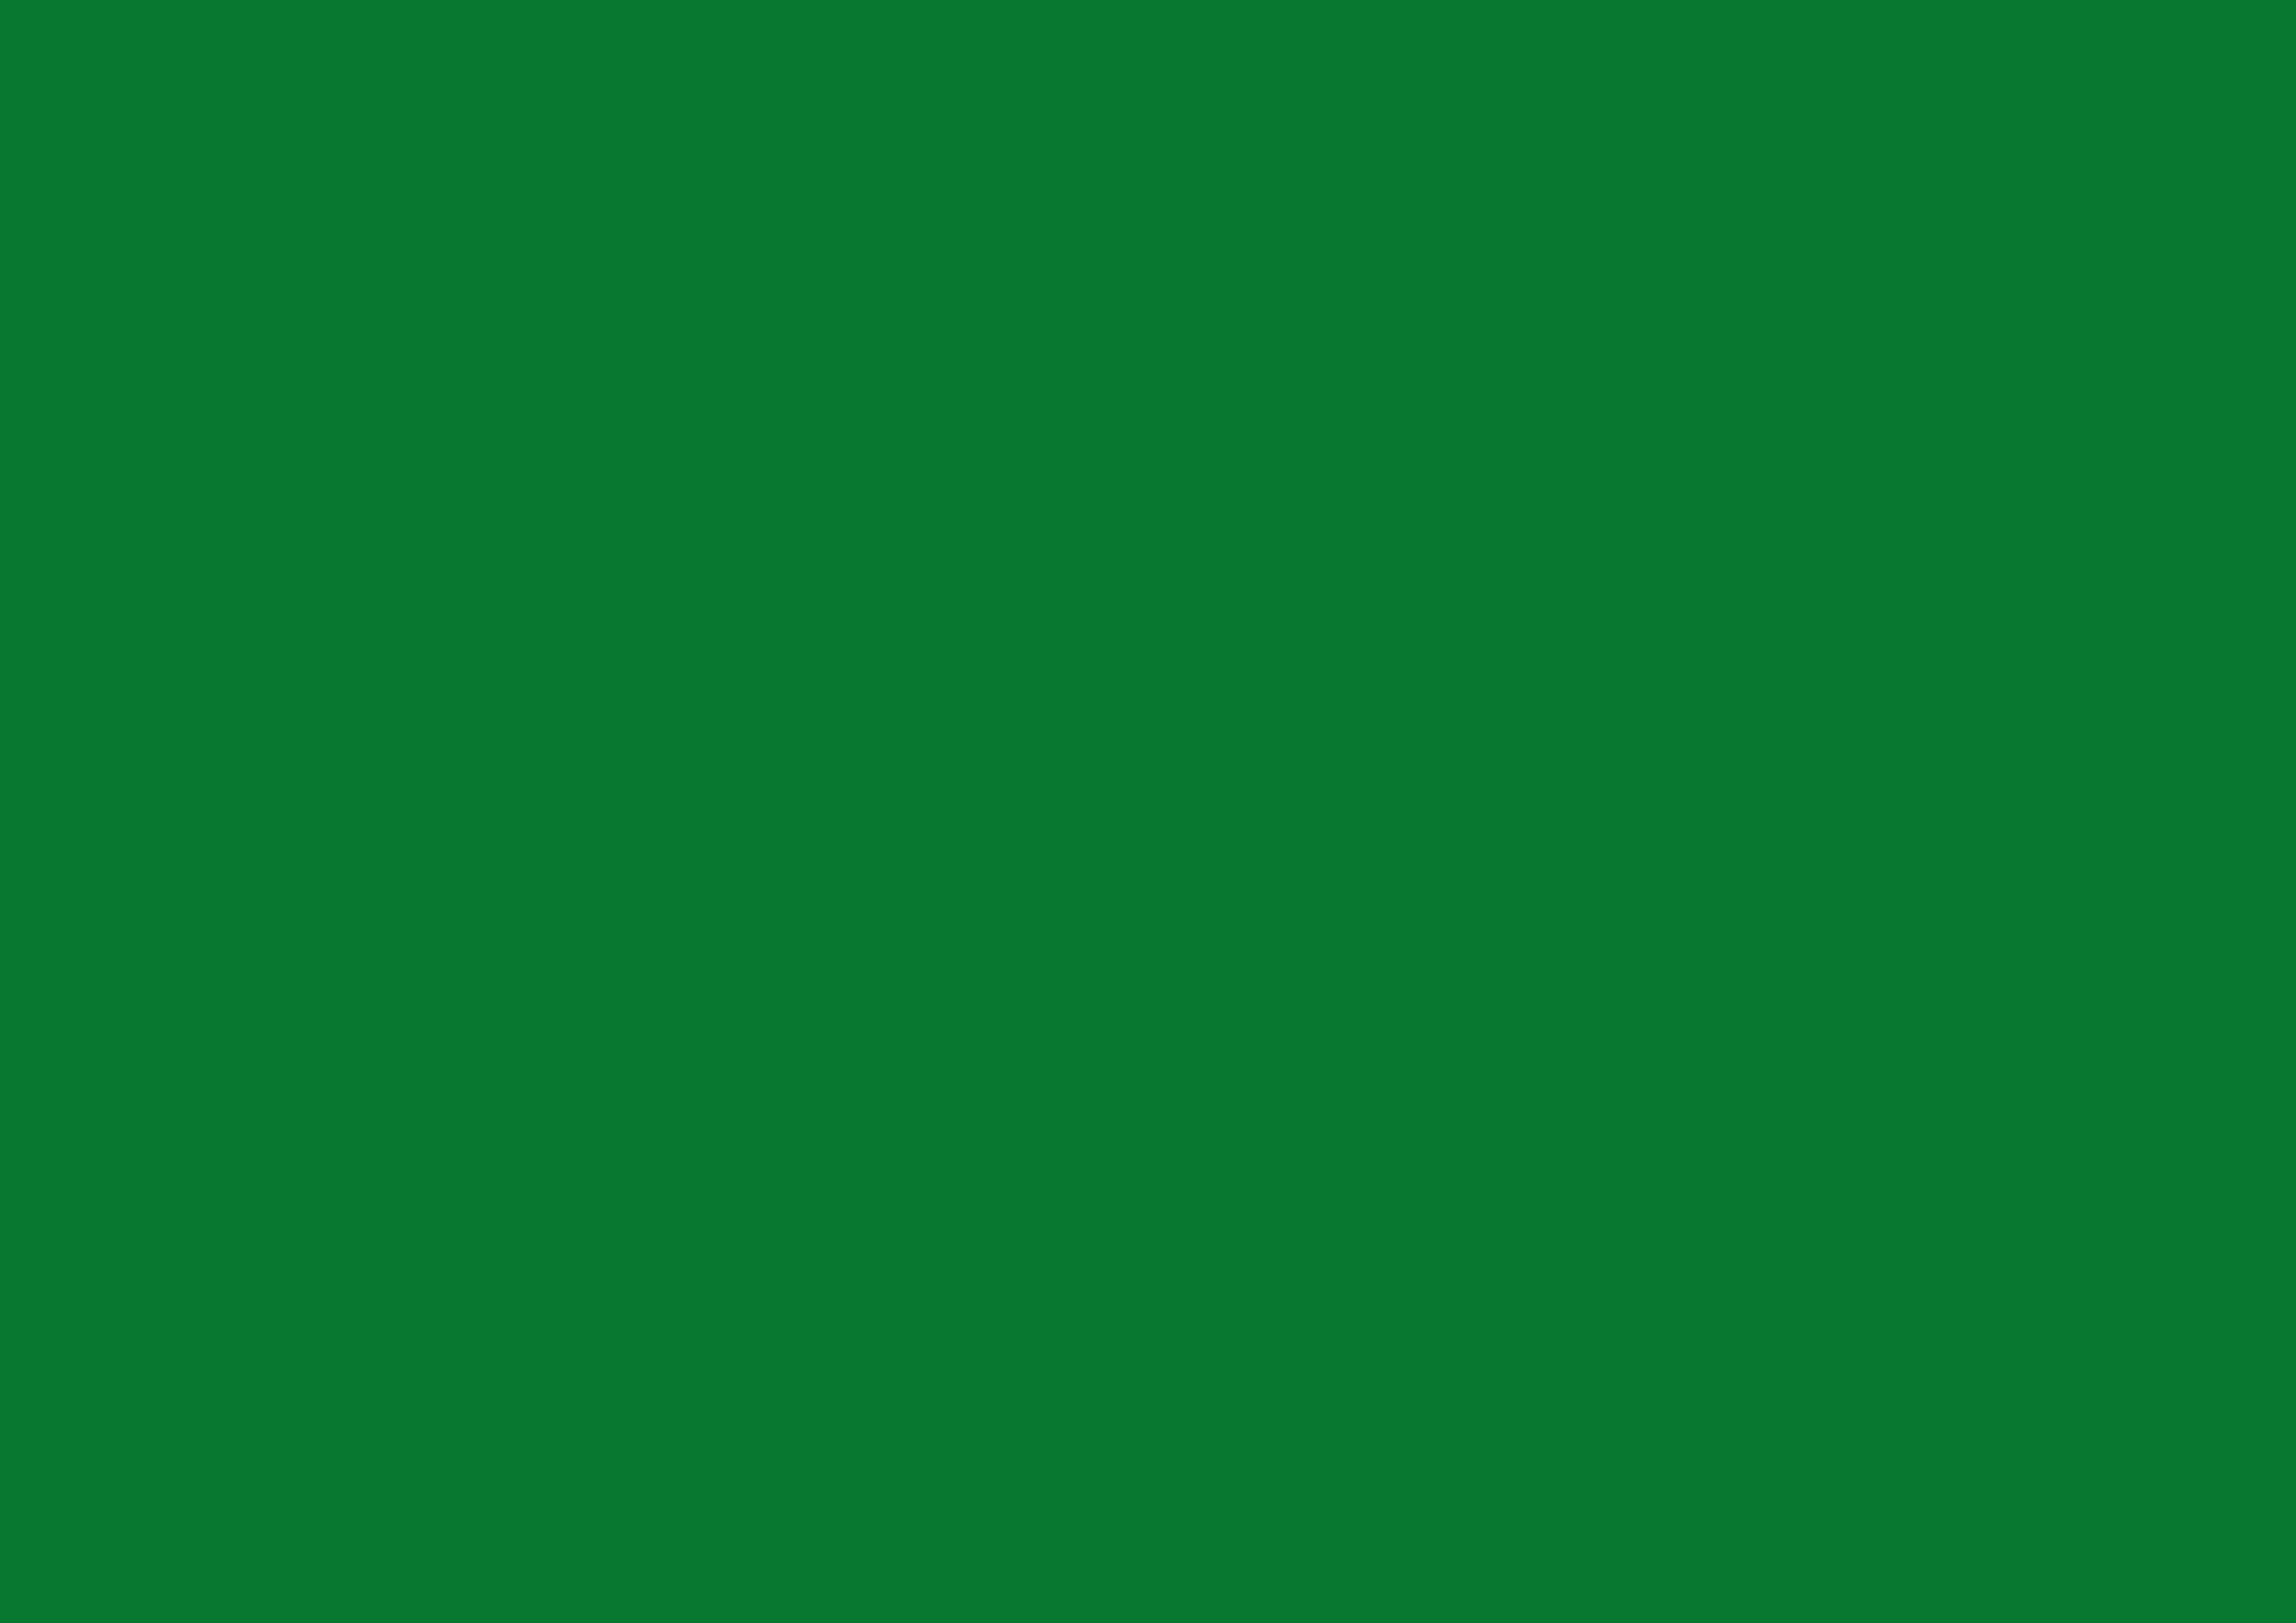 3508x2480 La Salle Green Solid Color Background